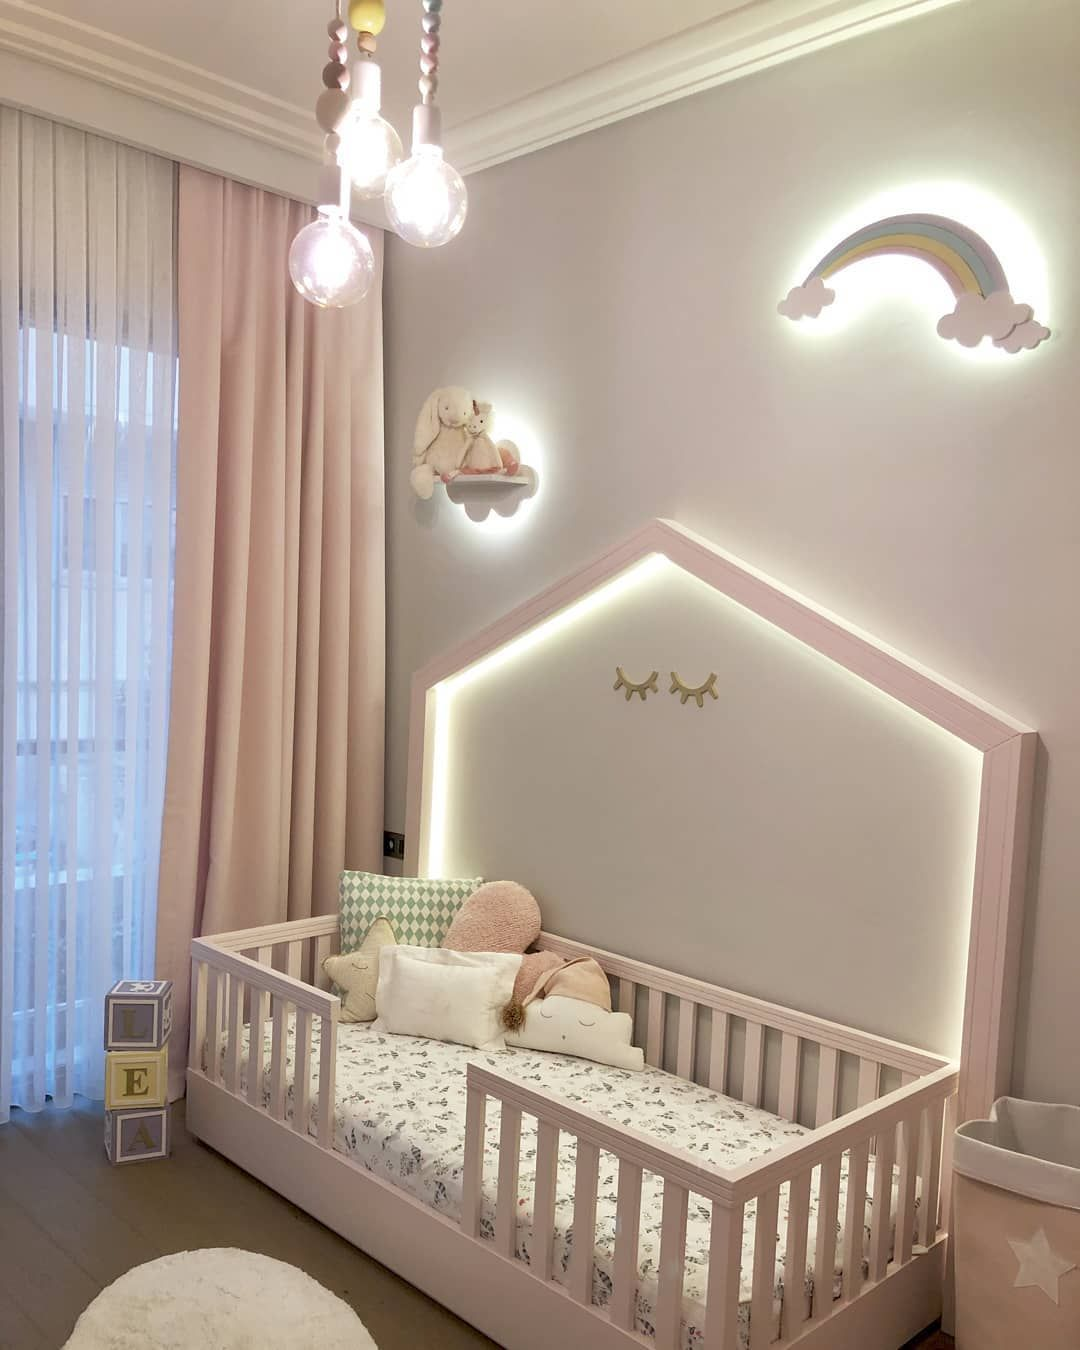 12 Cute Child Room Concepts Nursery Decor for Boy Lady and Unisex